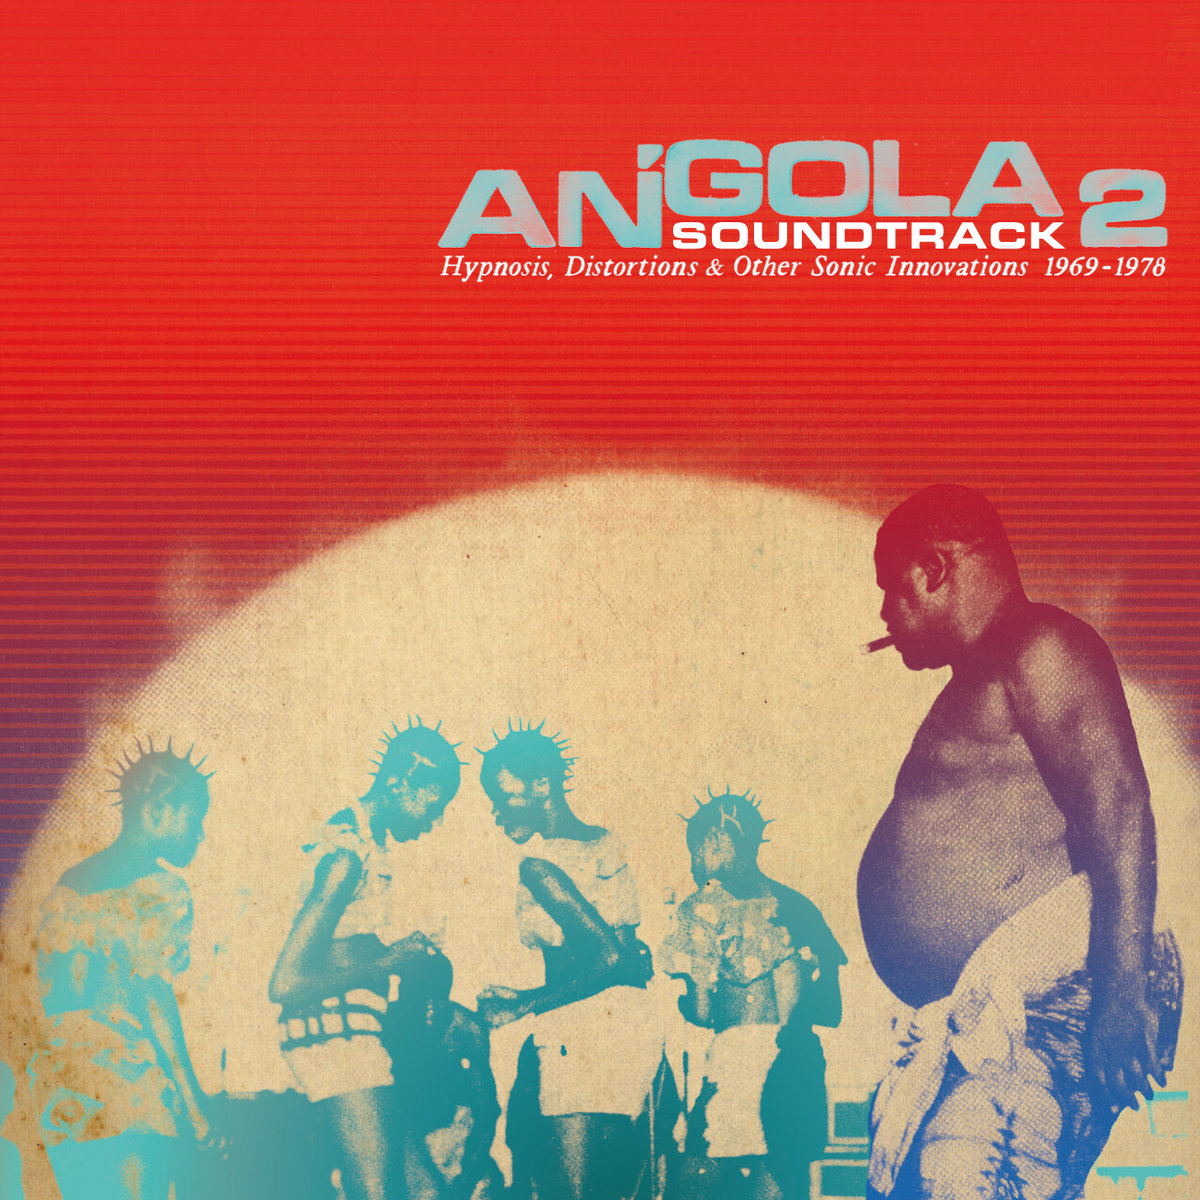 Image result for angola 2